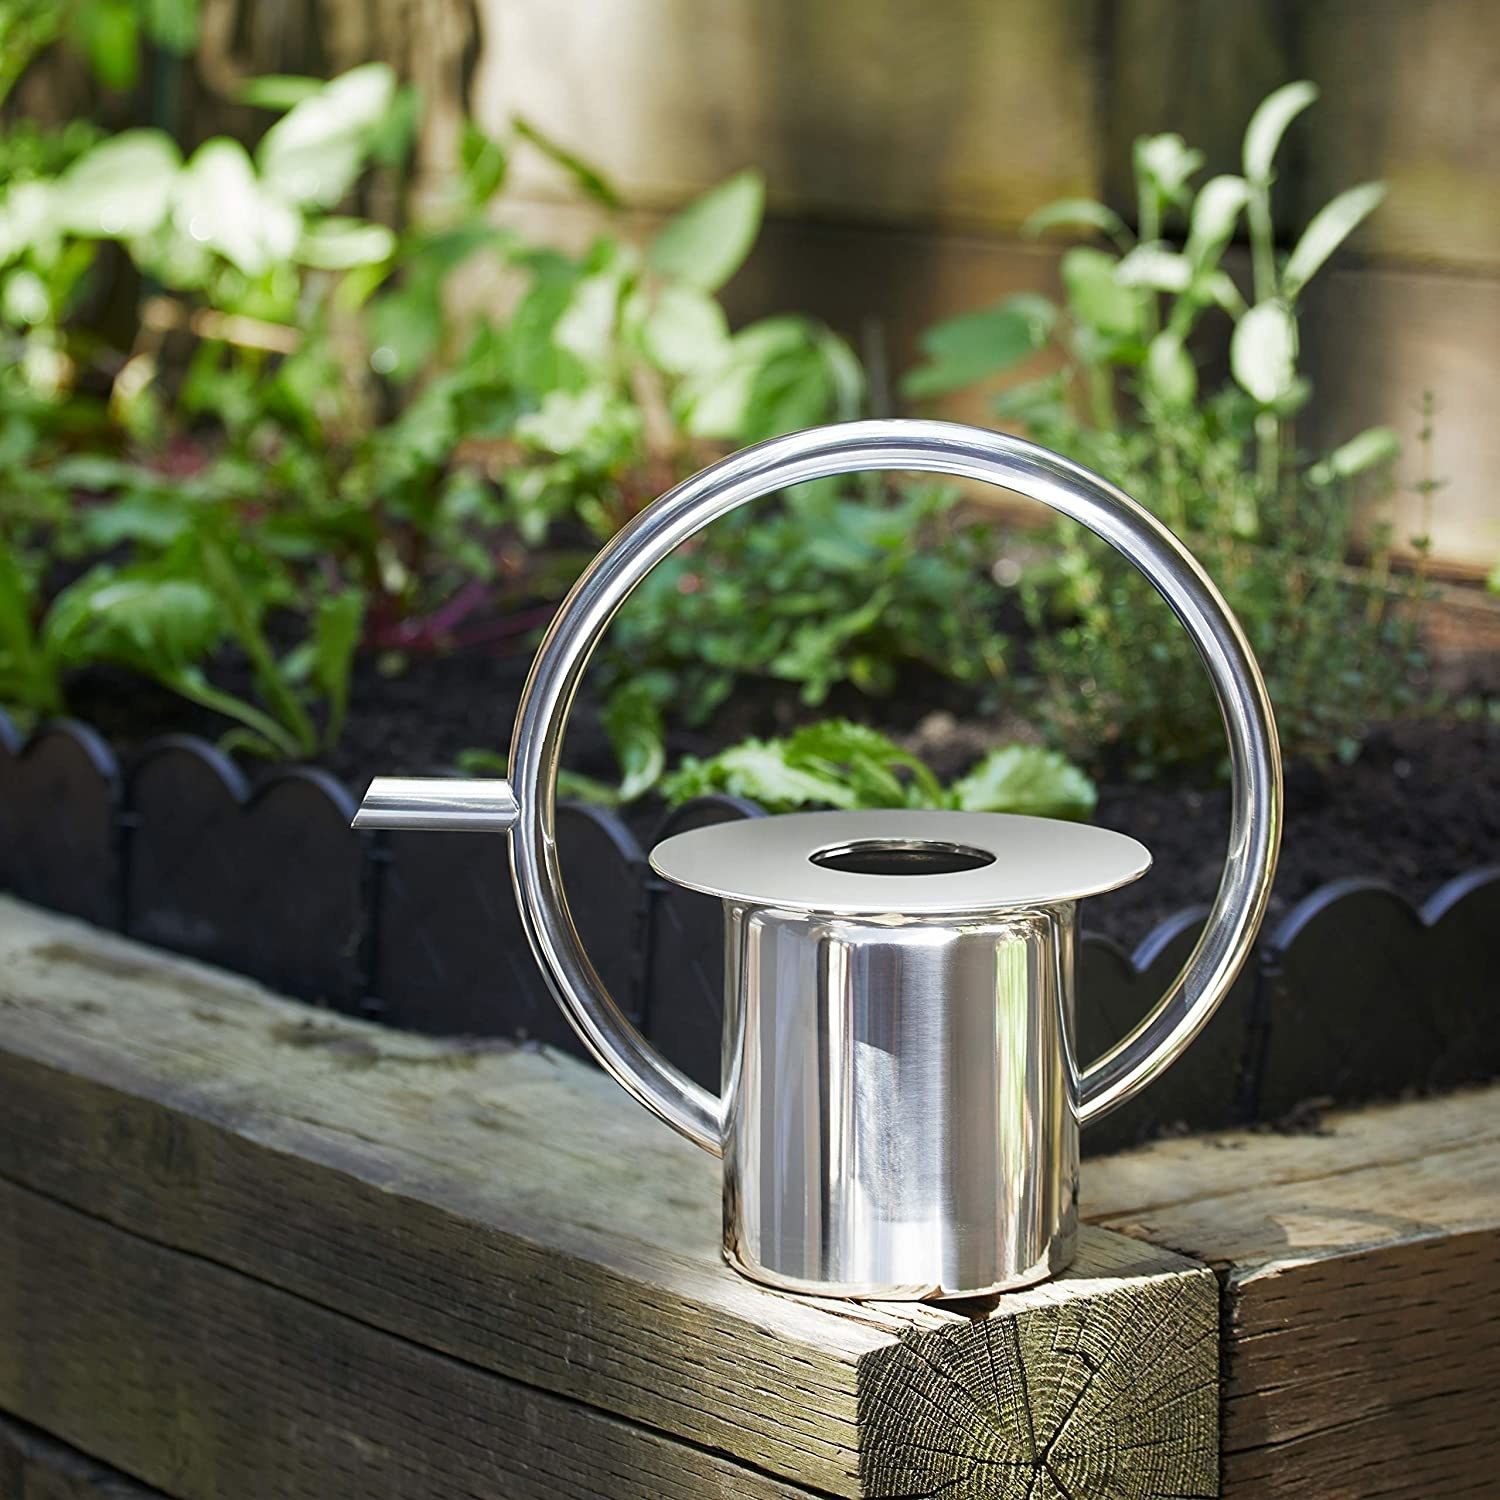 The watering can on the wooden ledge of a garden